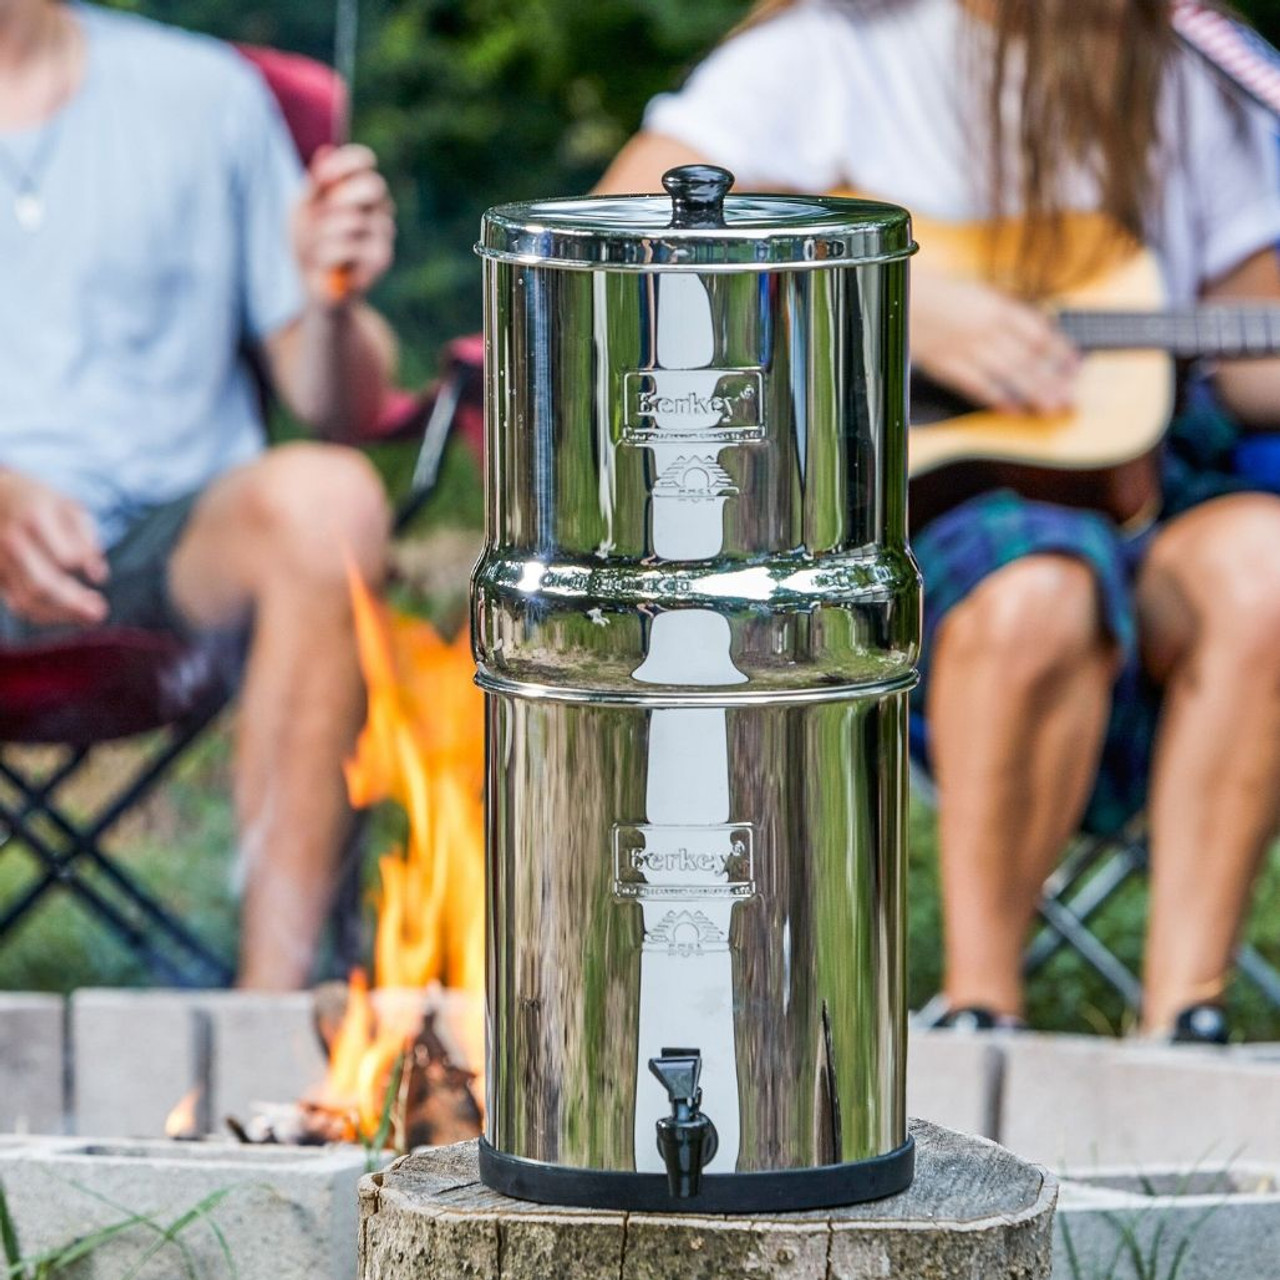 Portable Water Filter for Camping and RVs